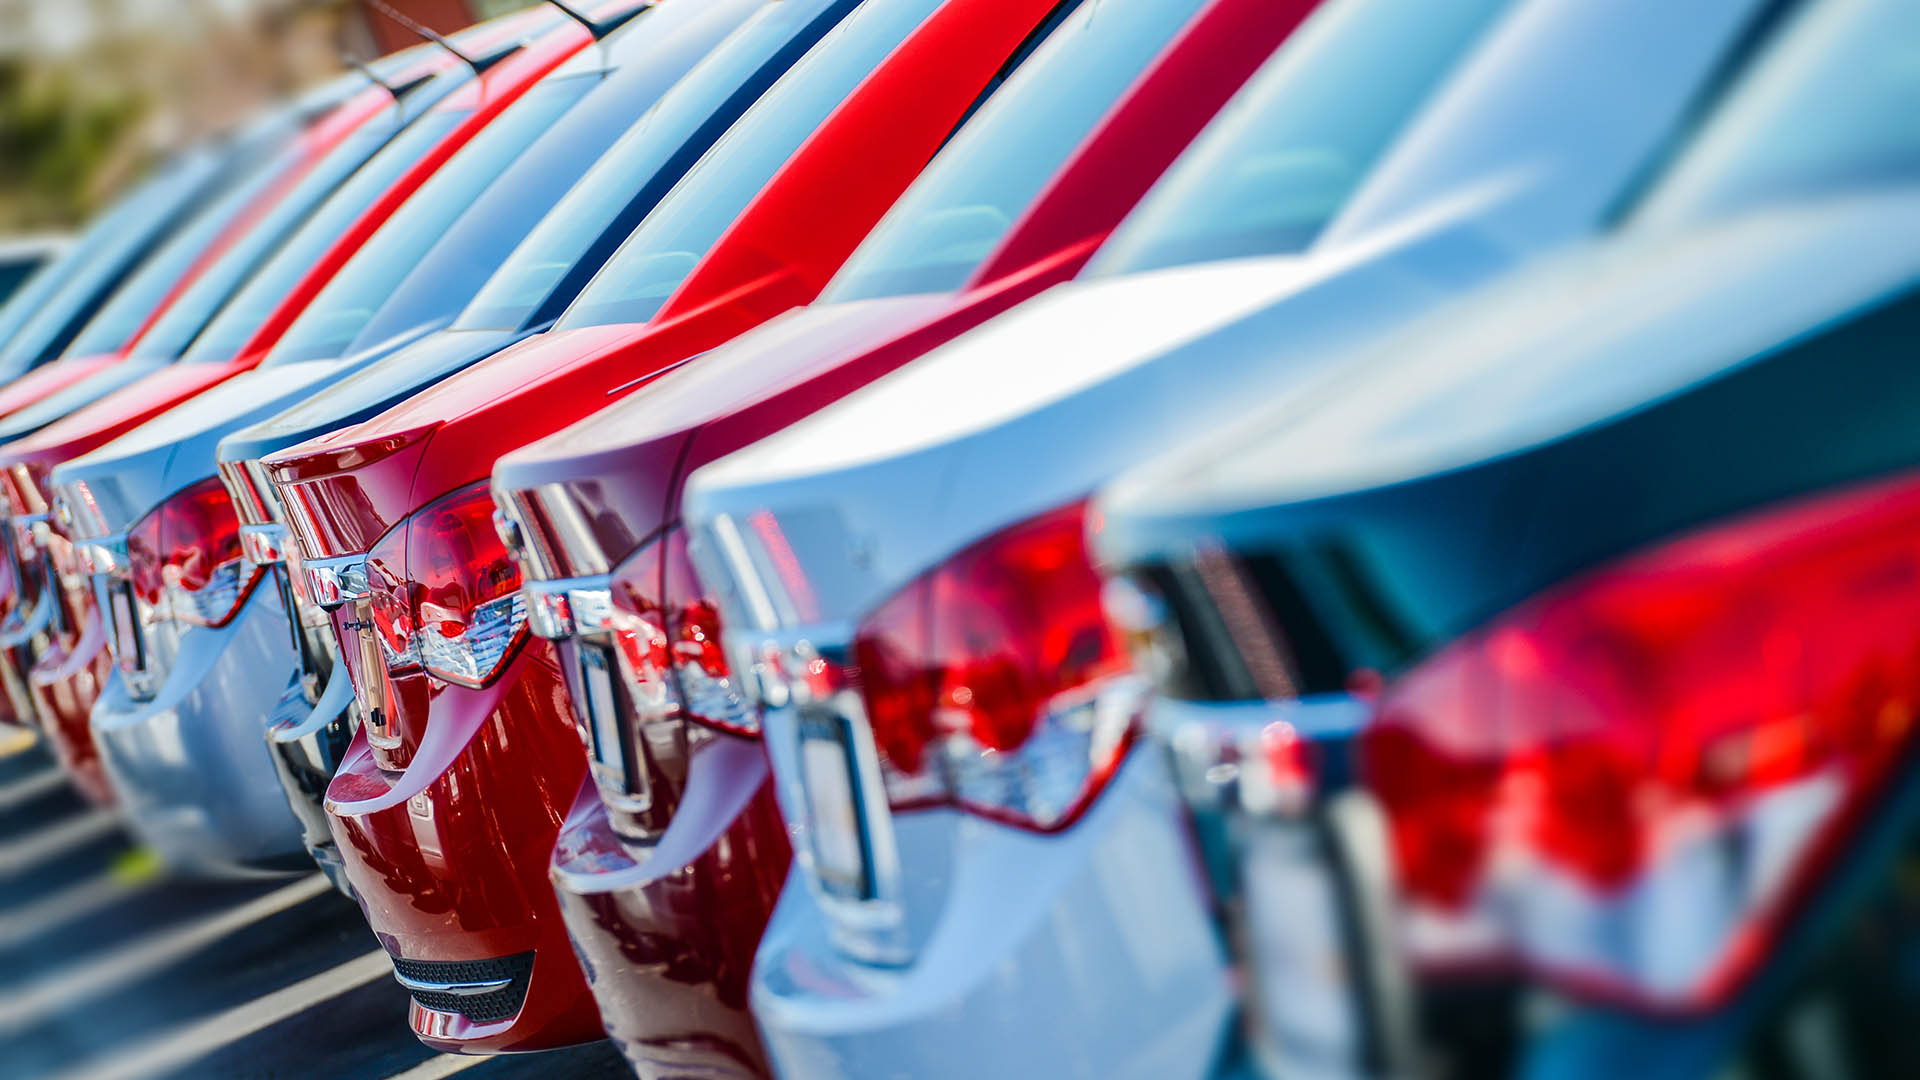 AP Eagers (ASX:APE) completes Kloster Motor Group sale